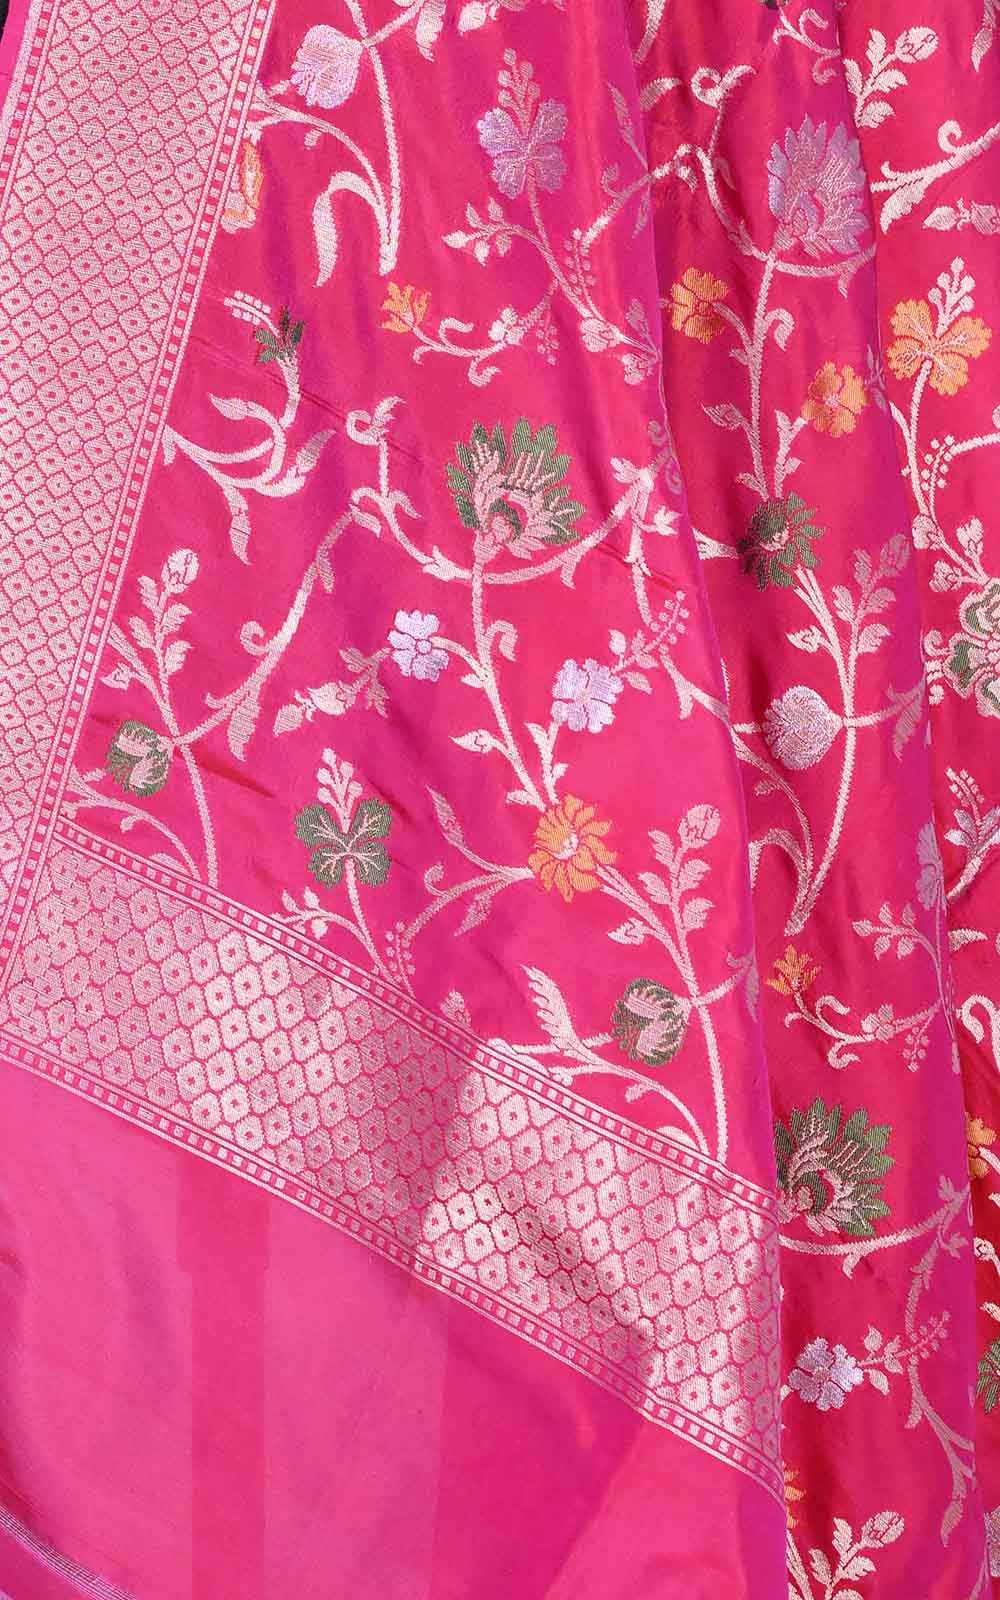 Red Pink Katan silk Banarasi dupatta with aesthetic meenedar floral jaal (2) Close up